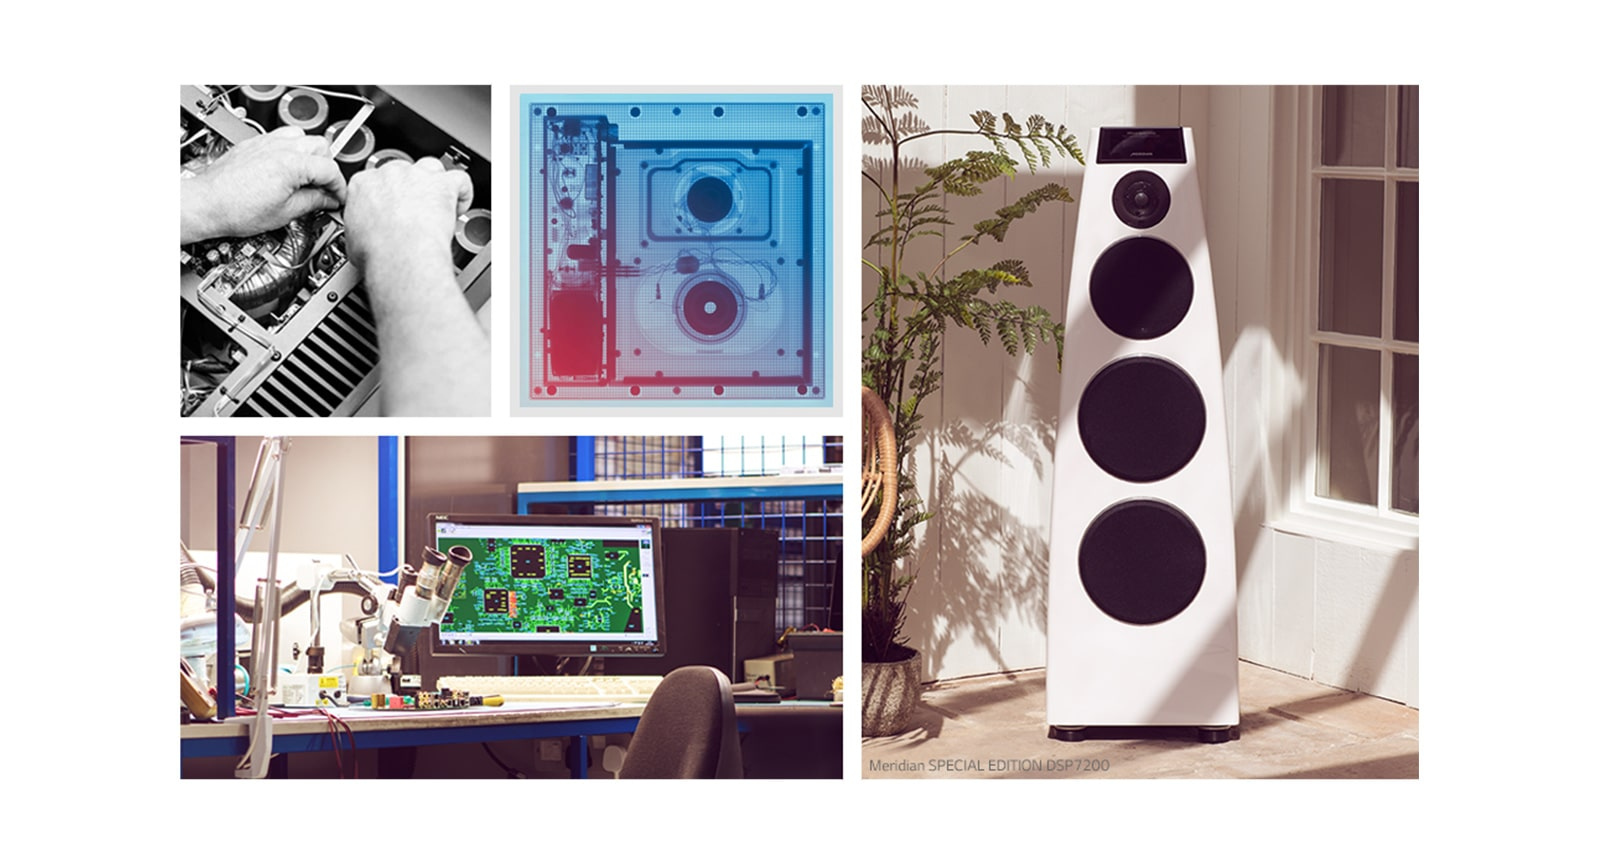 Collage. Clockwise from top-left: two images of Meridian internal hardware, a white Meridian speaker, and a Meridian R&D desk.